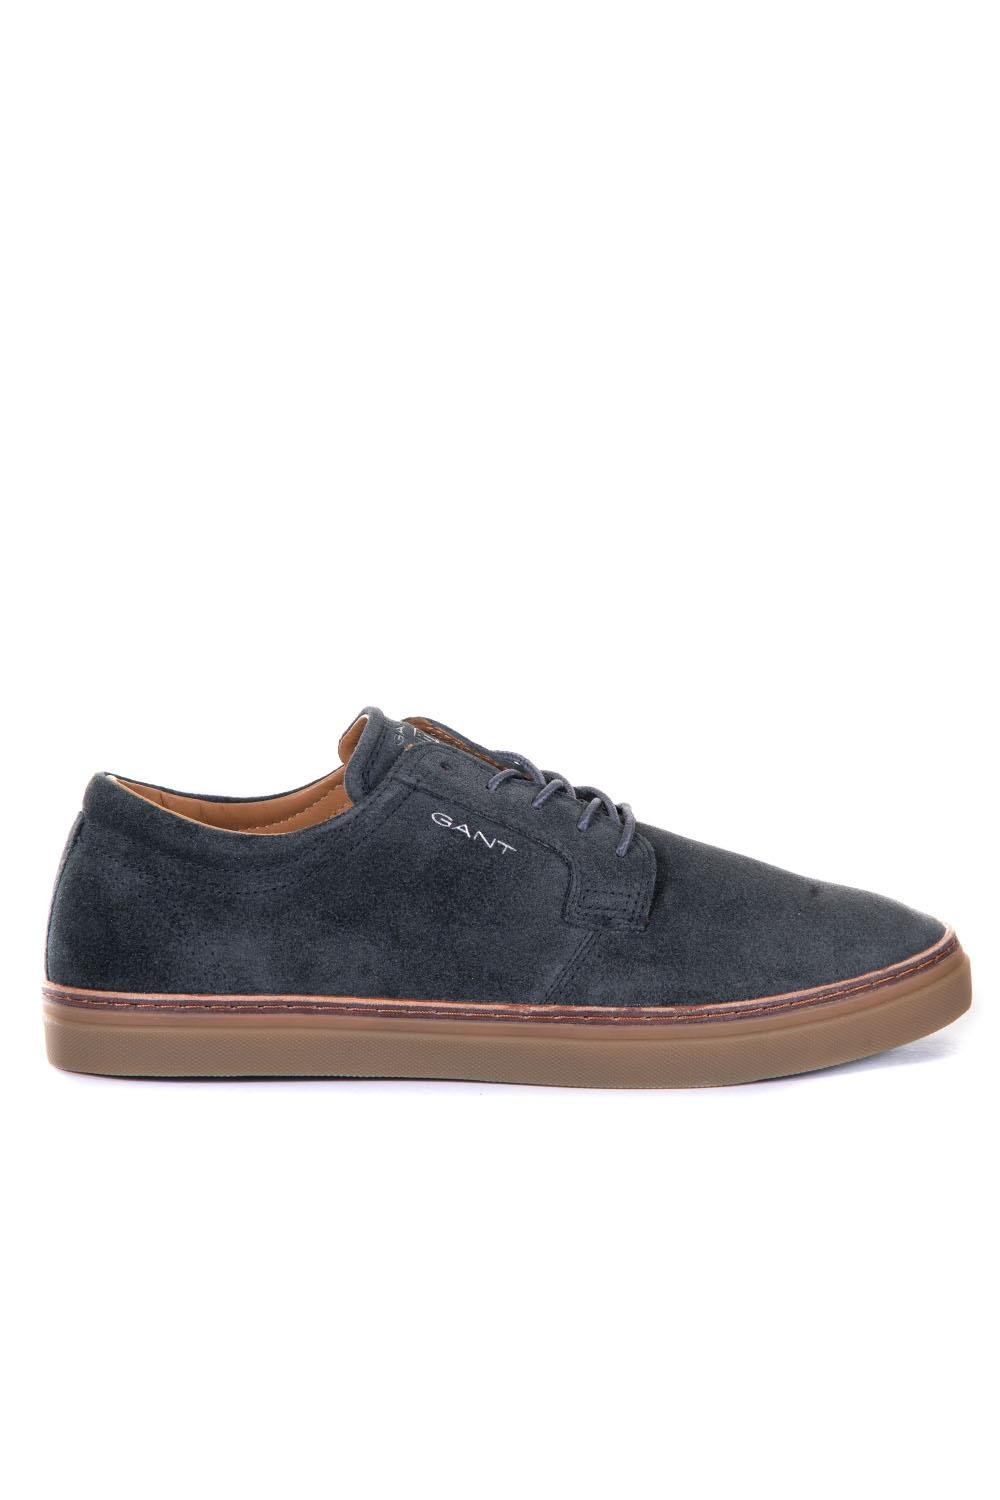 9d59a2fc0bbe7d Low sneaker in suede and rubber - Gant - ScaglioneIschia